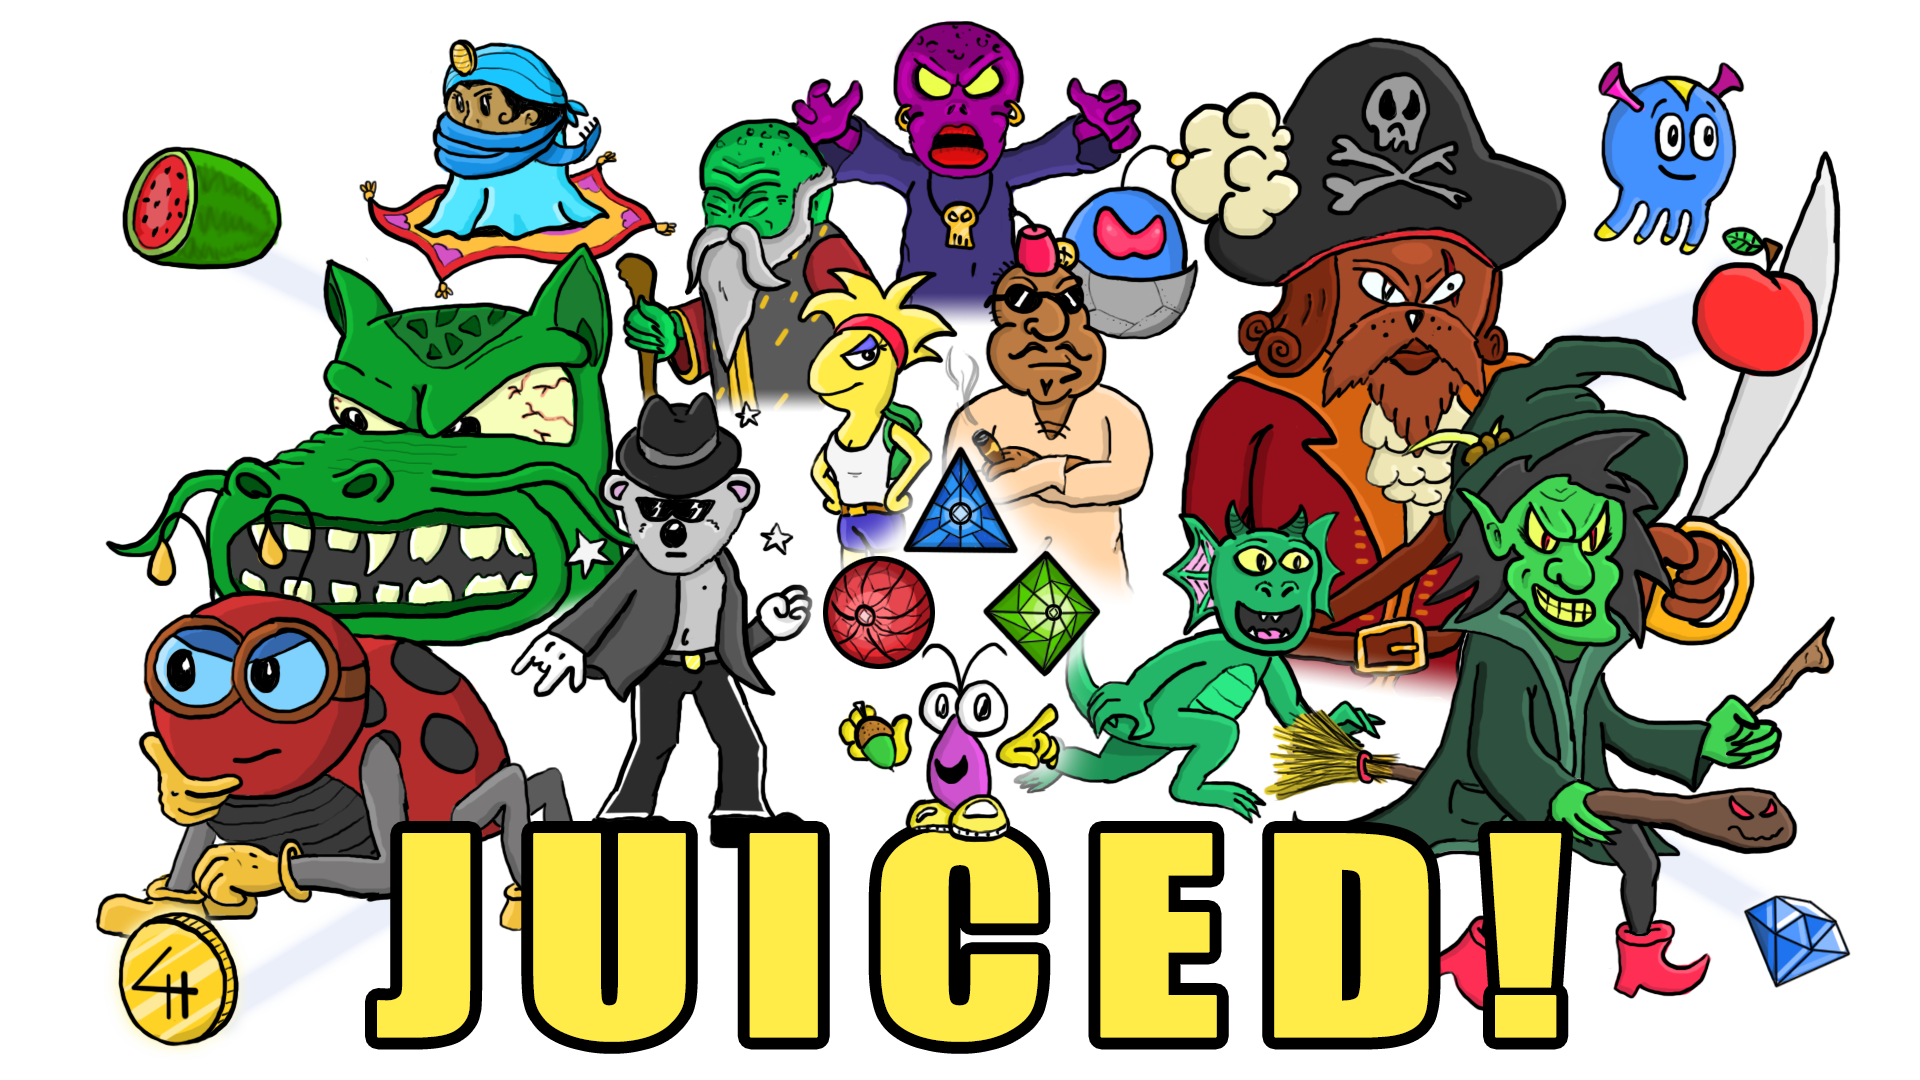 juiced platform game logo